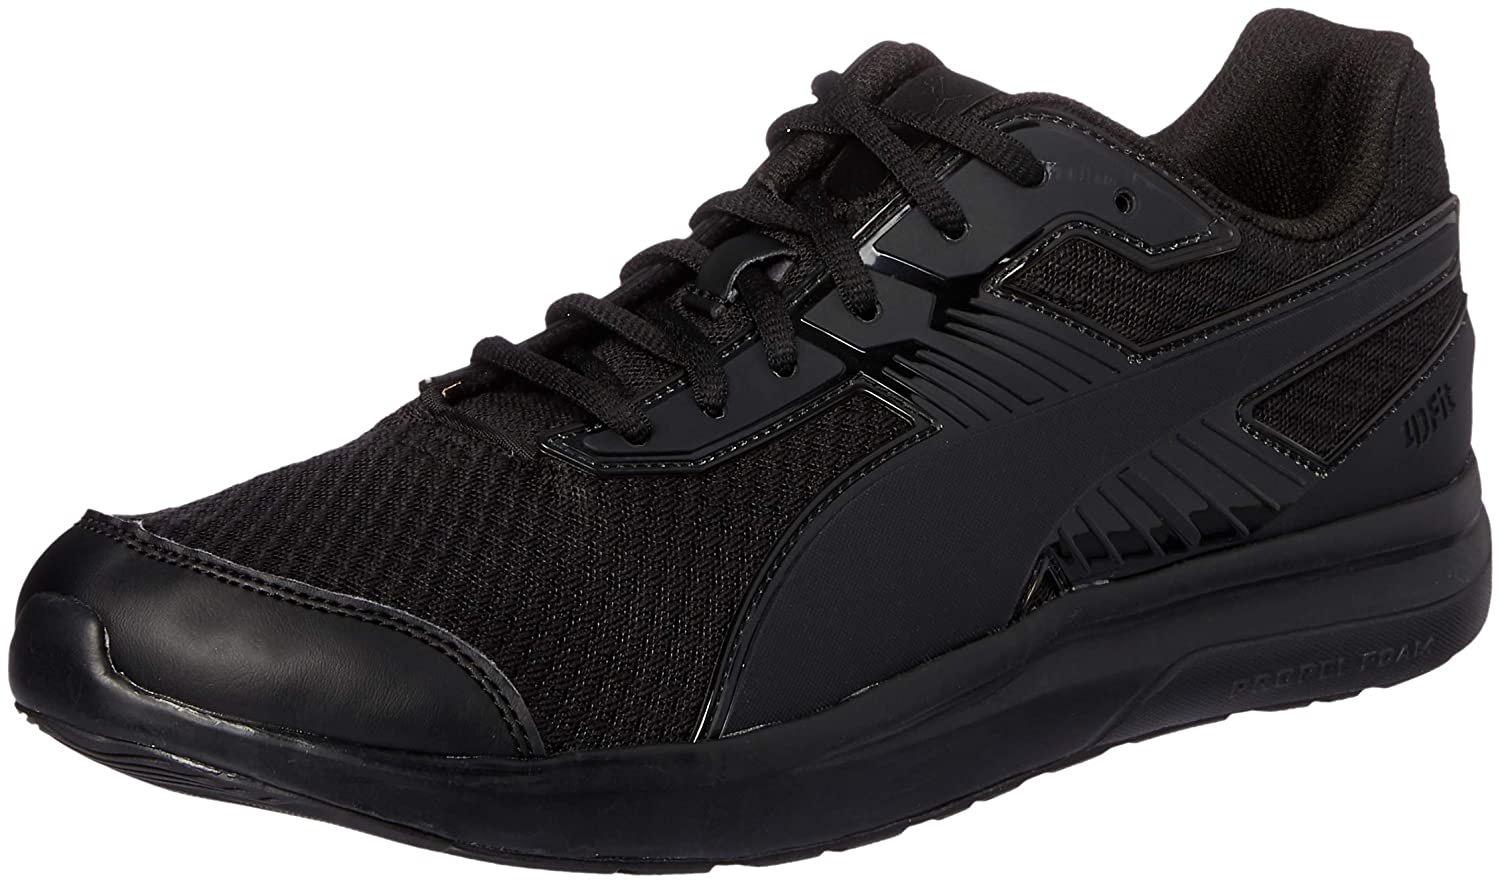 TALLA 44.5 EU. Puma Escaper Pro, Zapatillas Unisex Adulto